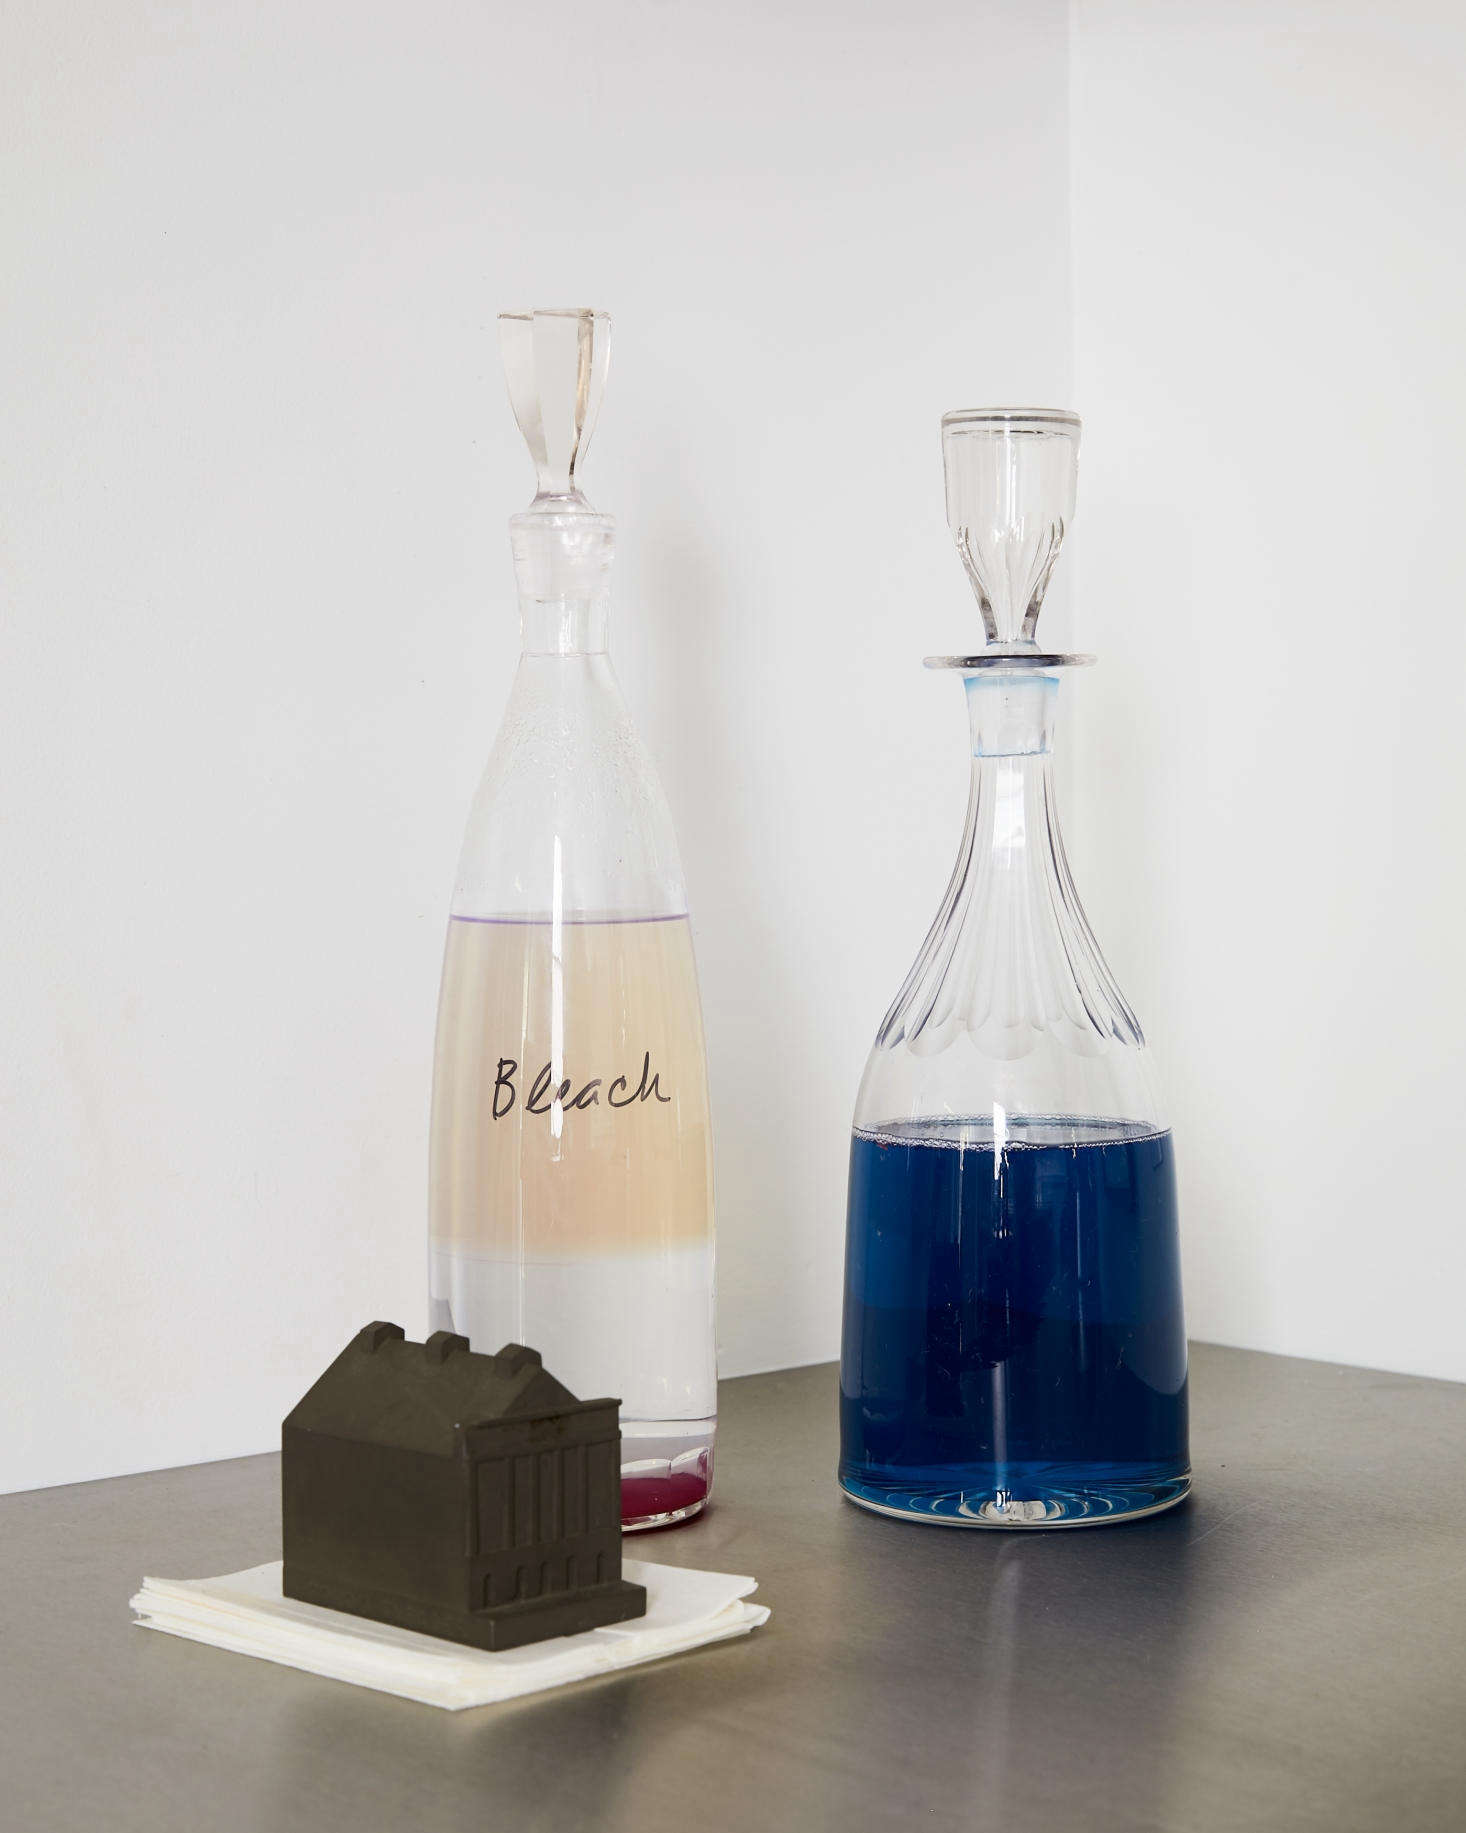 Amy keeps her laundry detergent and bleach in vintage crystal bottles. A stack ofColor catchers is anchored by a mini Ford Theatre inspired by the Buildings of Disaster series by Constantin Boym and Laurene Leon Boym.